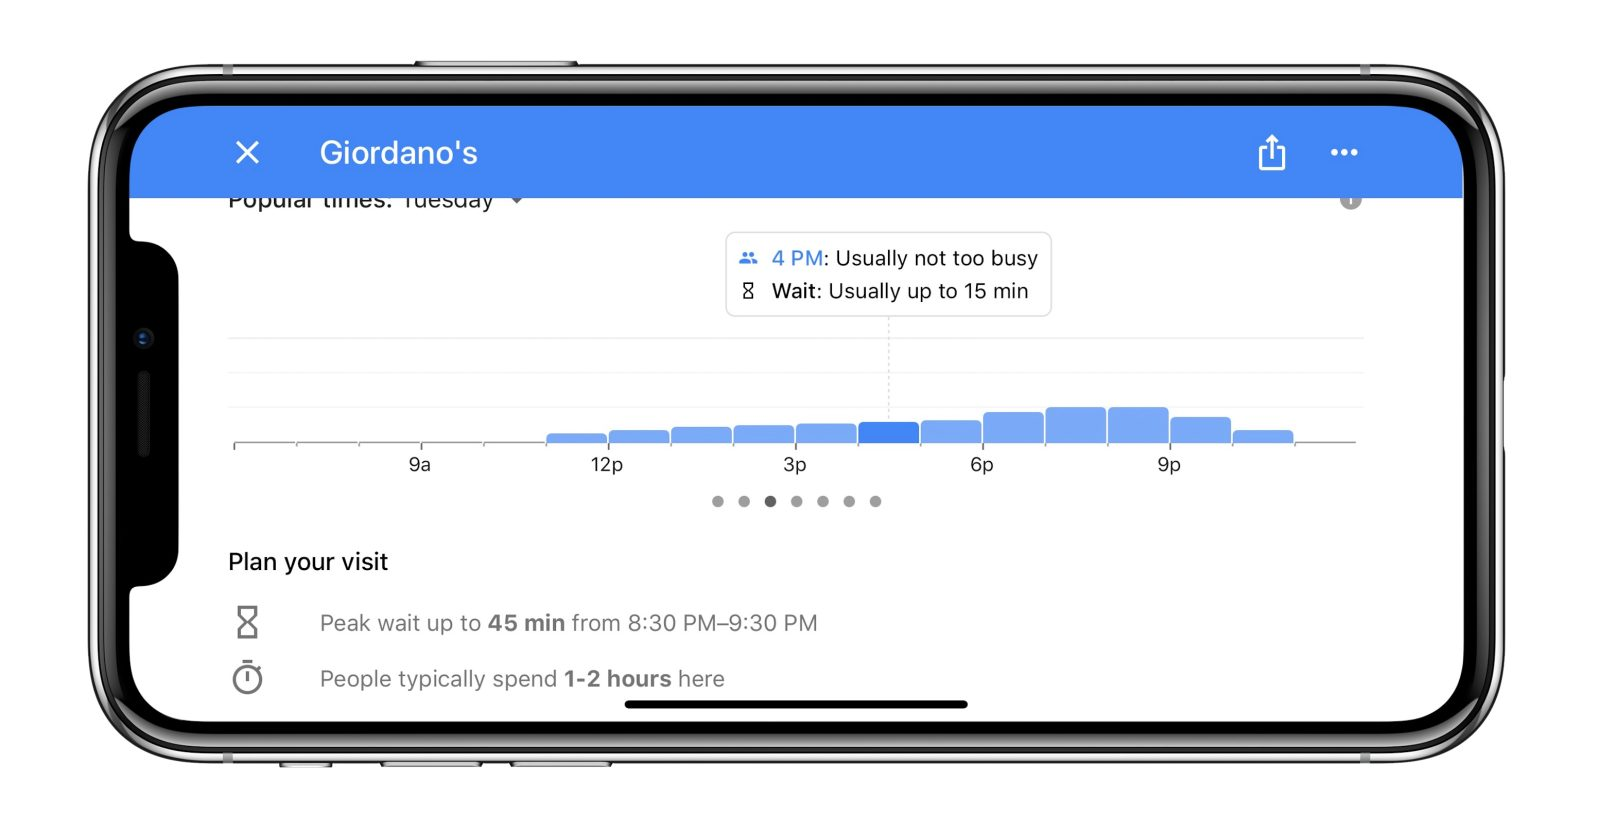 Google Maps for iOS adds restaurant wait times, additional transit